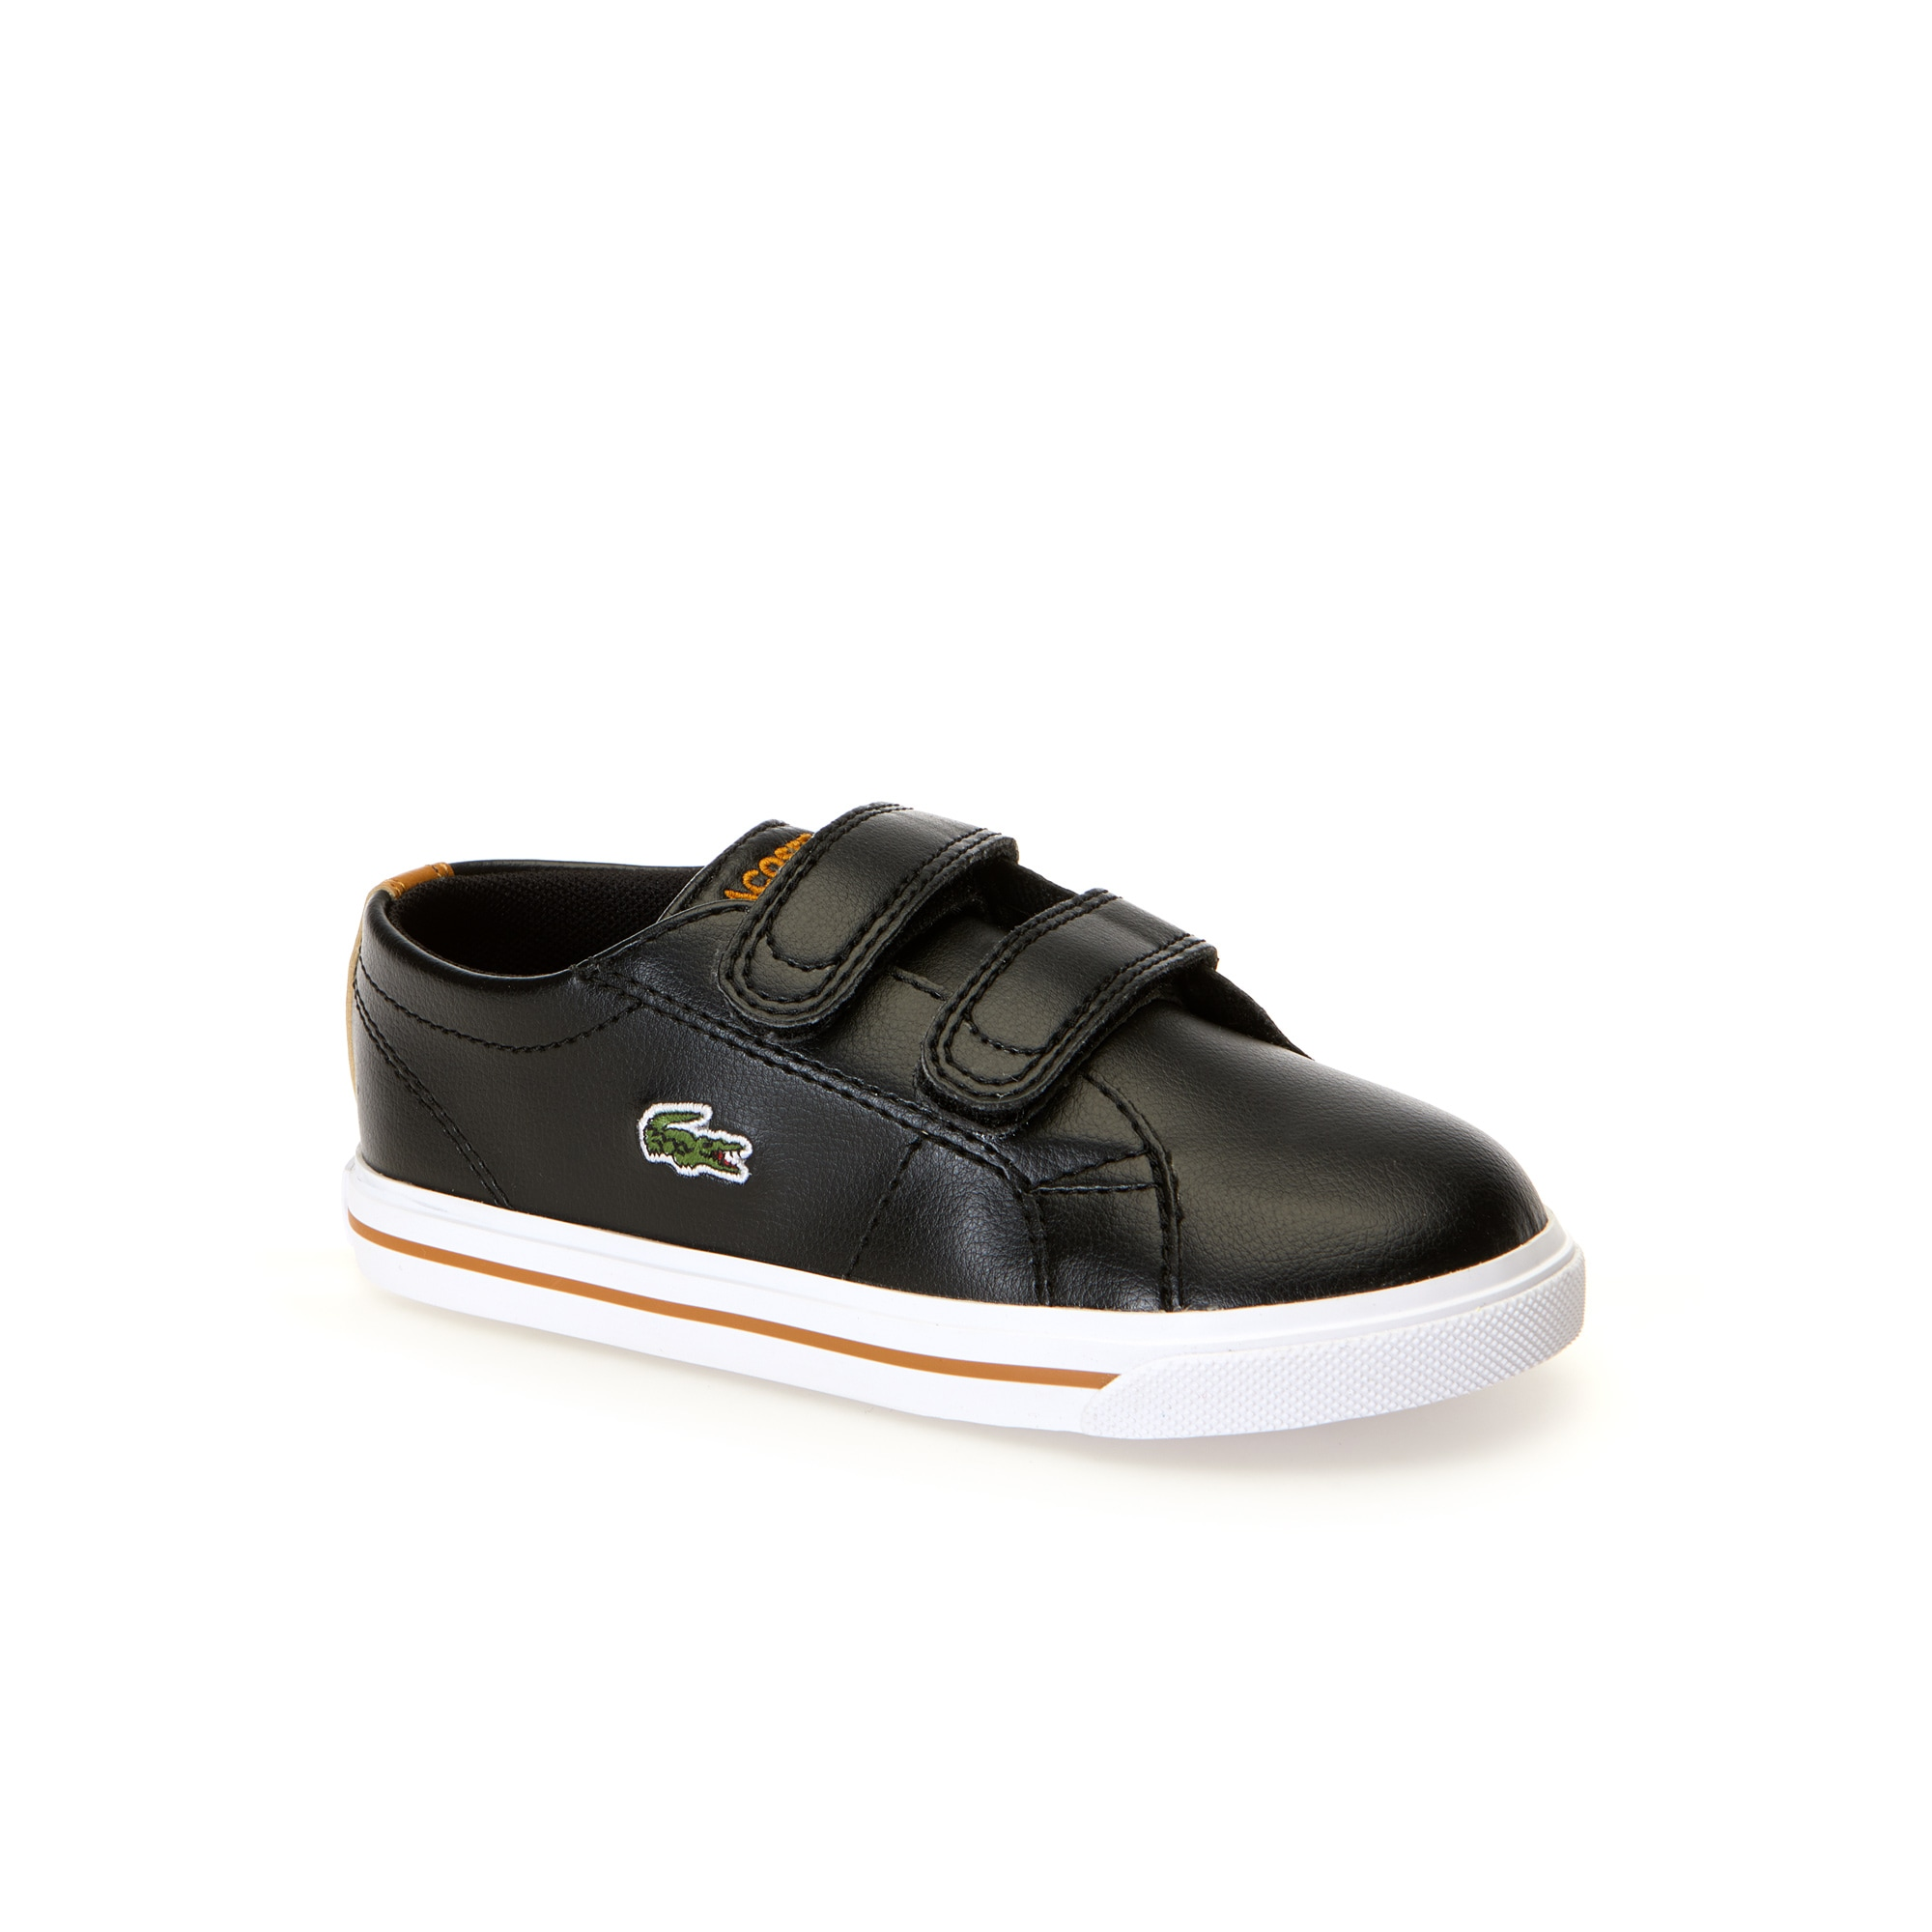 Infants' Riberac Textile Trainers